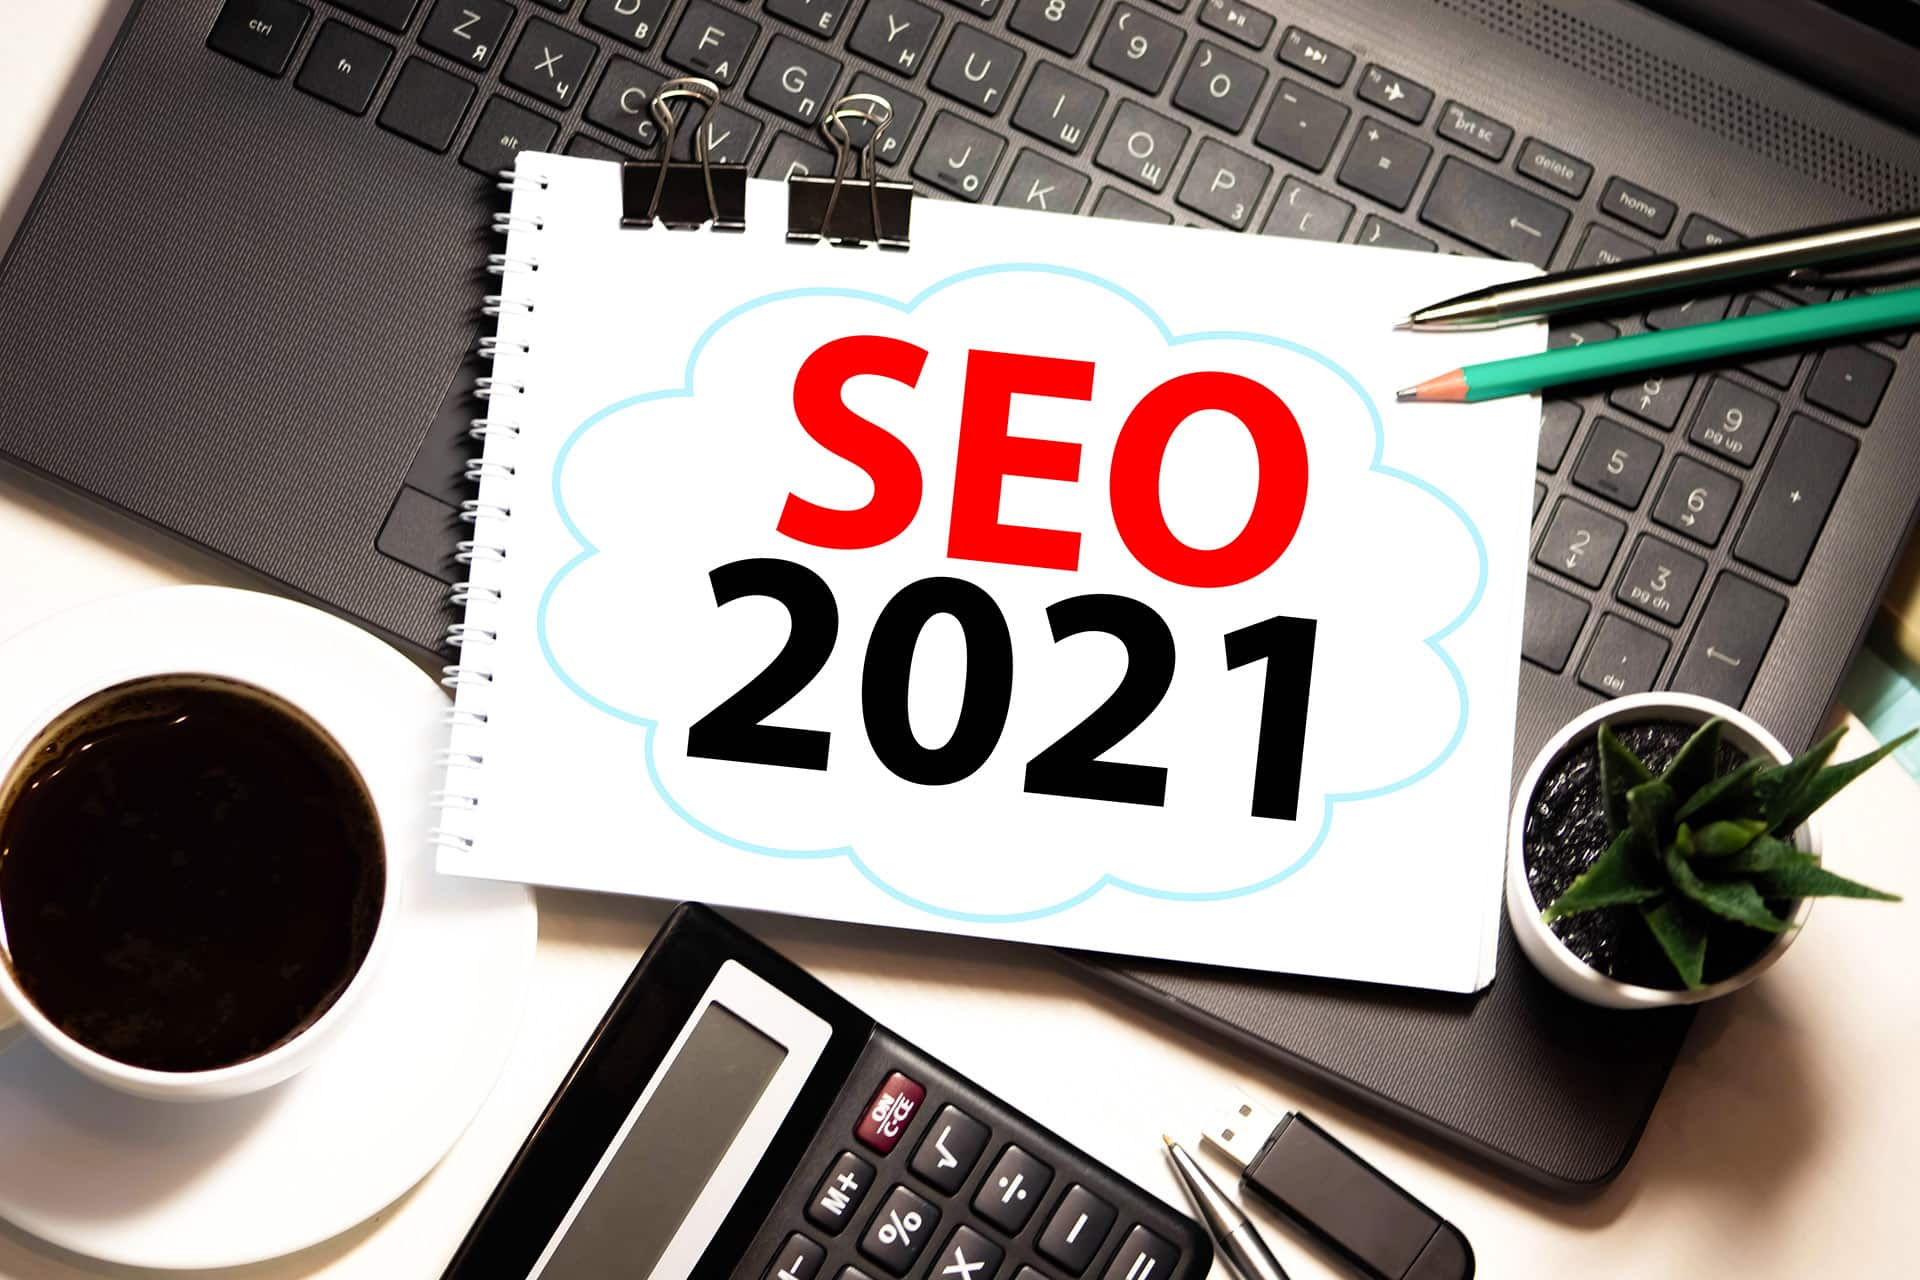 SEO Services in 2021